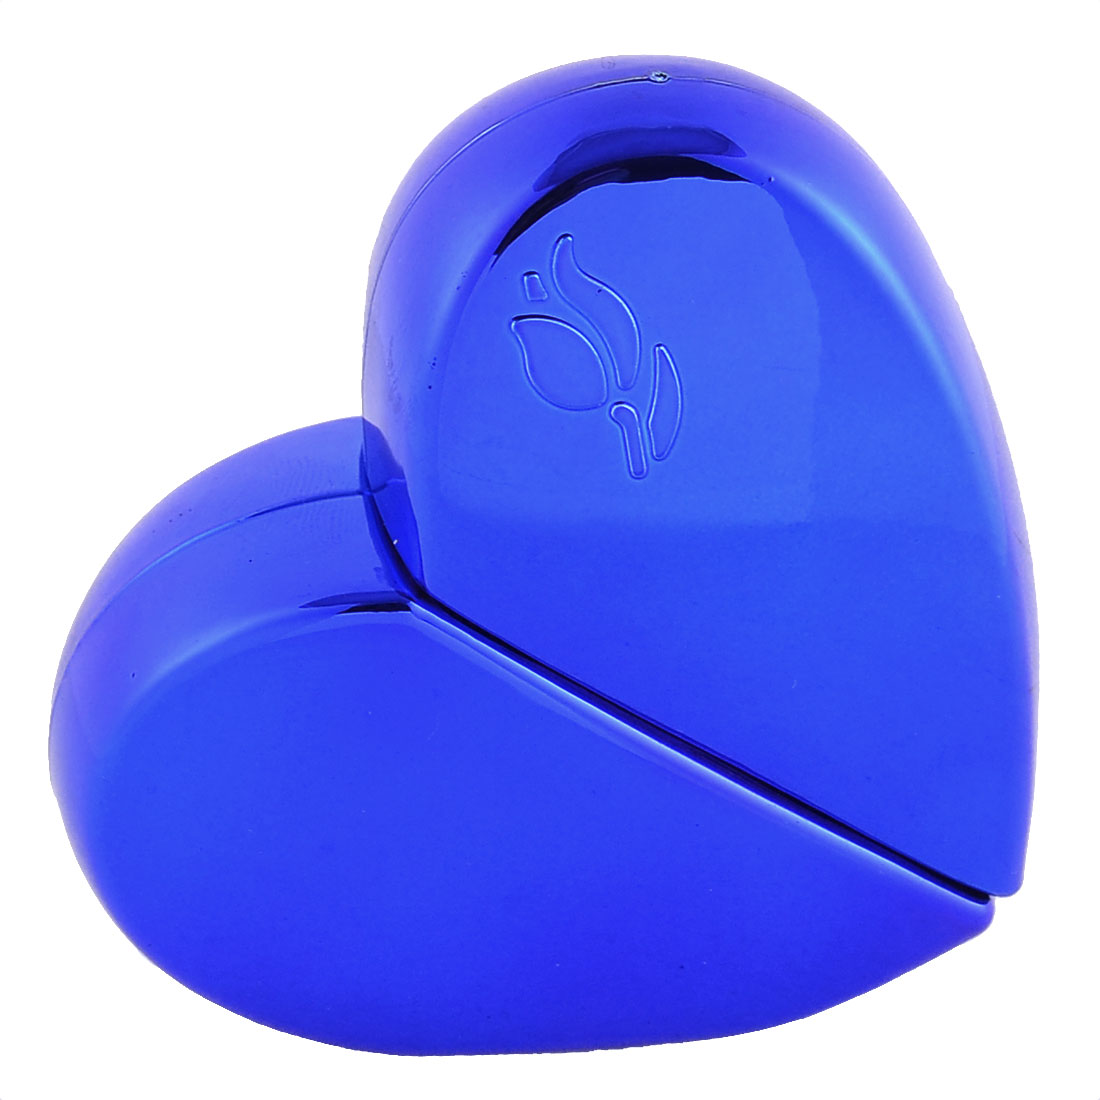 25mL Travel Portable Heart-shaped Cosmetic Water Perfume Spray Bottles Blue